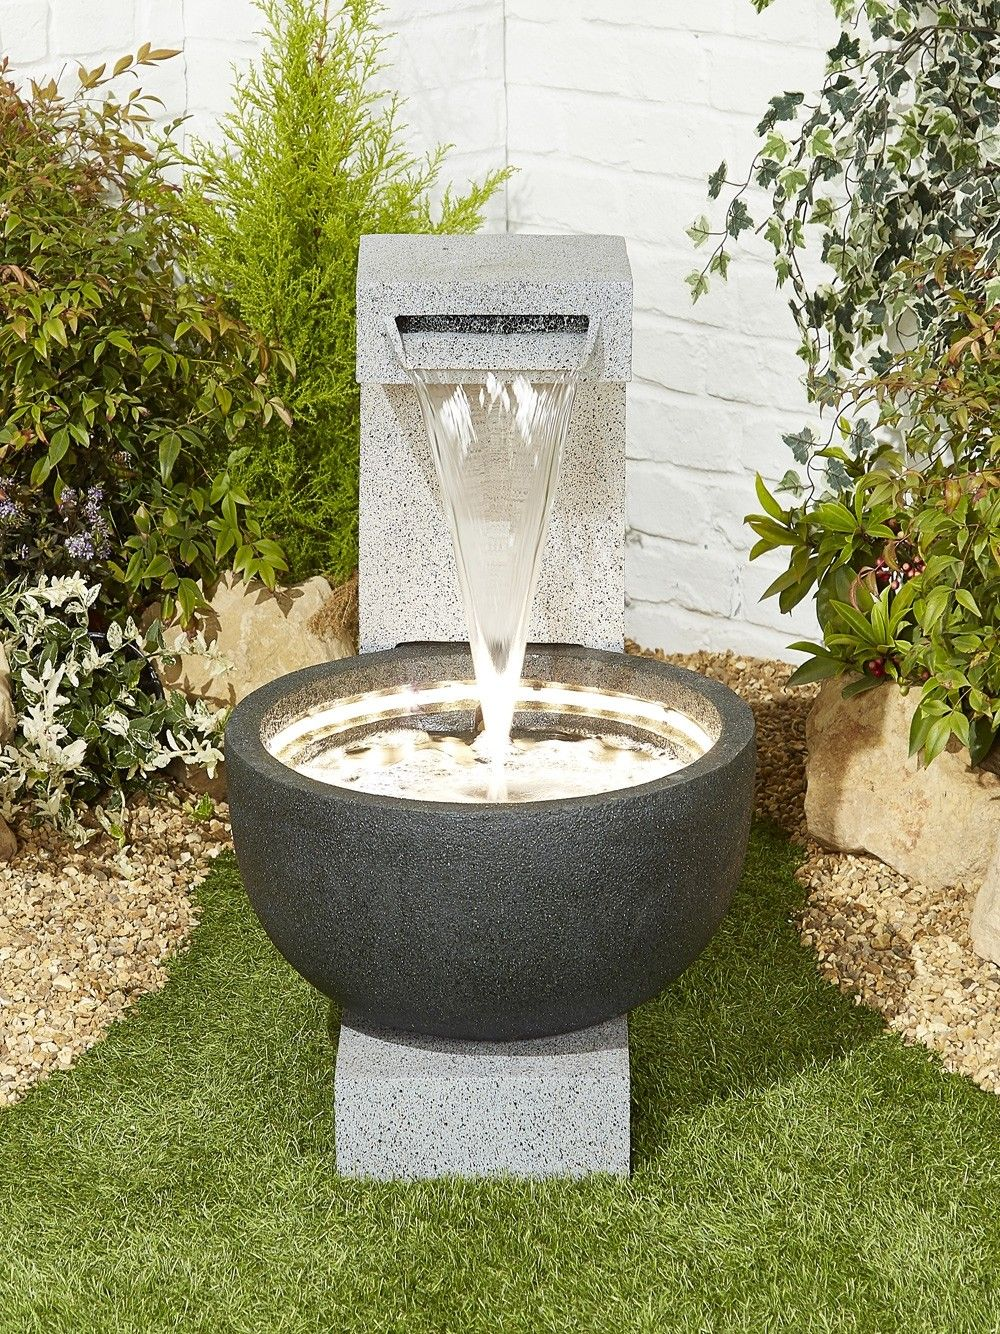 Solitary Pour Water Feature Modern Fountain Water Fountains Outdoor Water Features In The Garden Modern outdoor water fountain